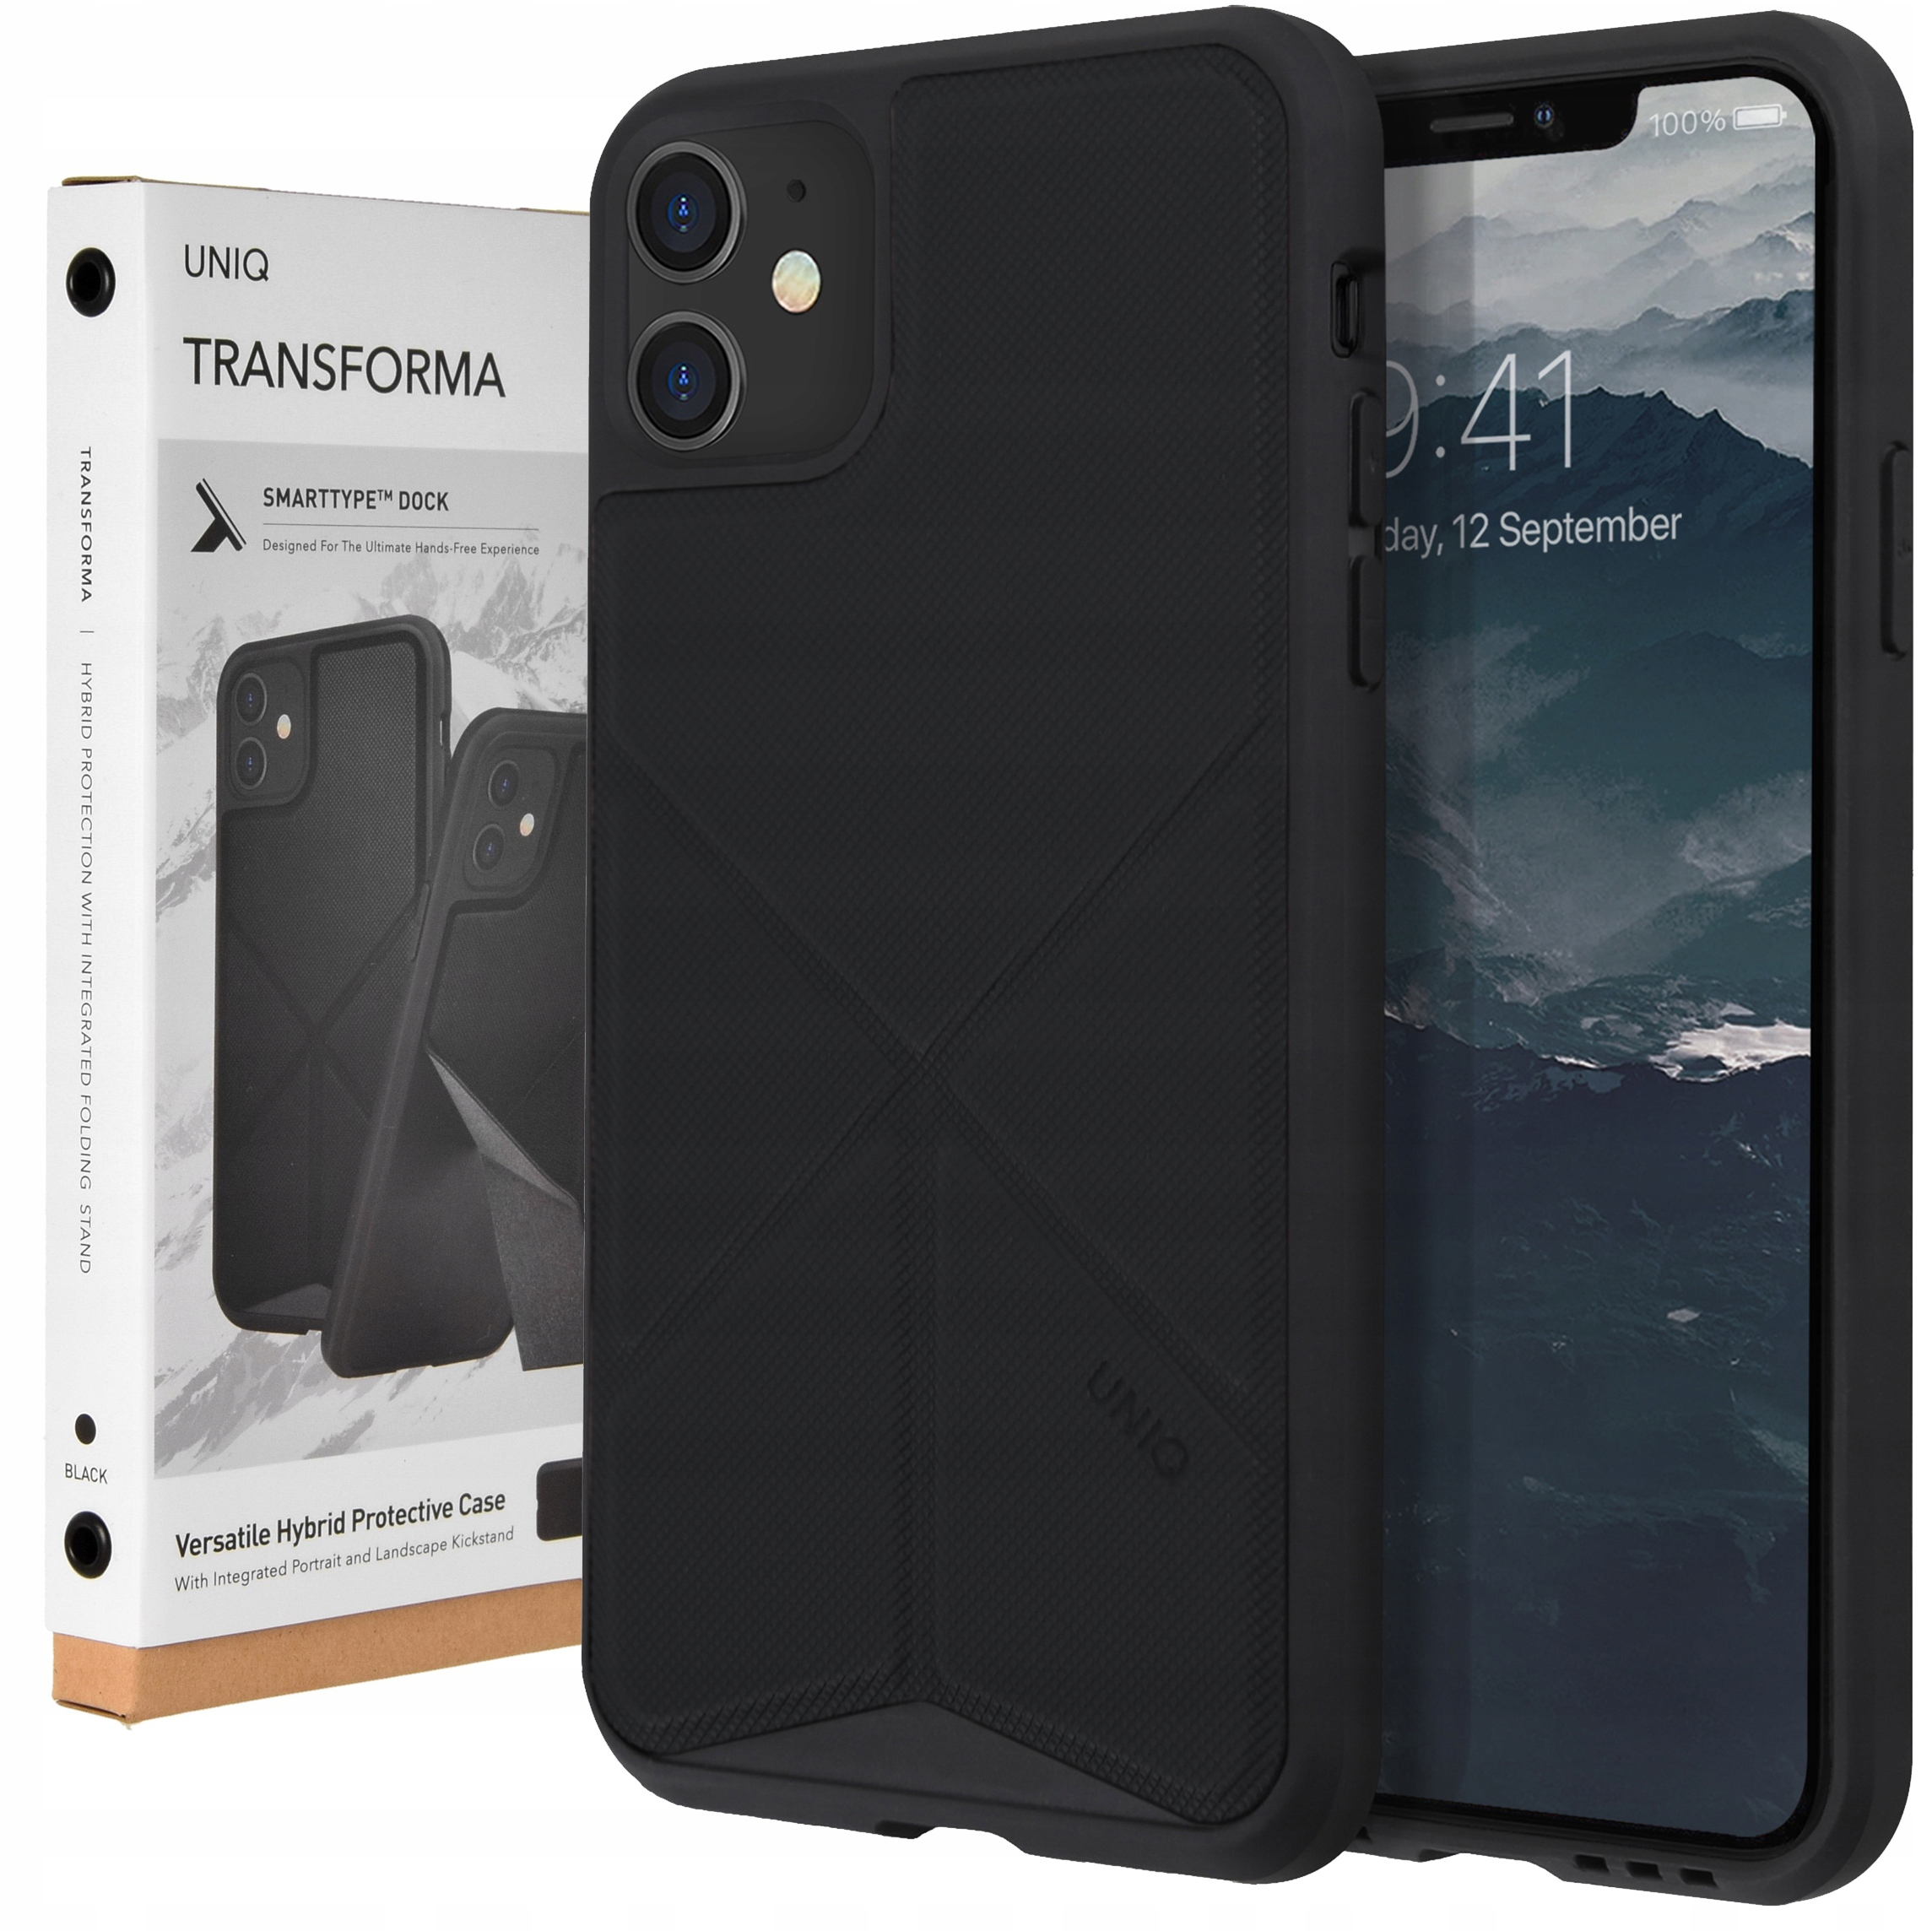 Etui Uniq do iPhone 11, obudowa, cover, Transforma